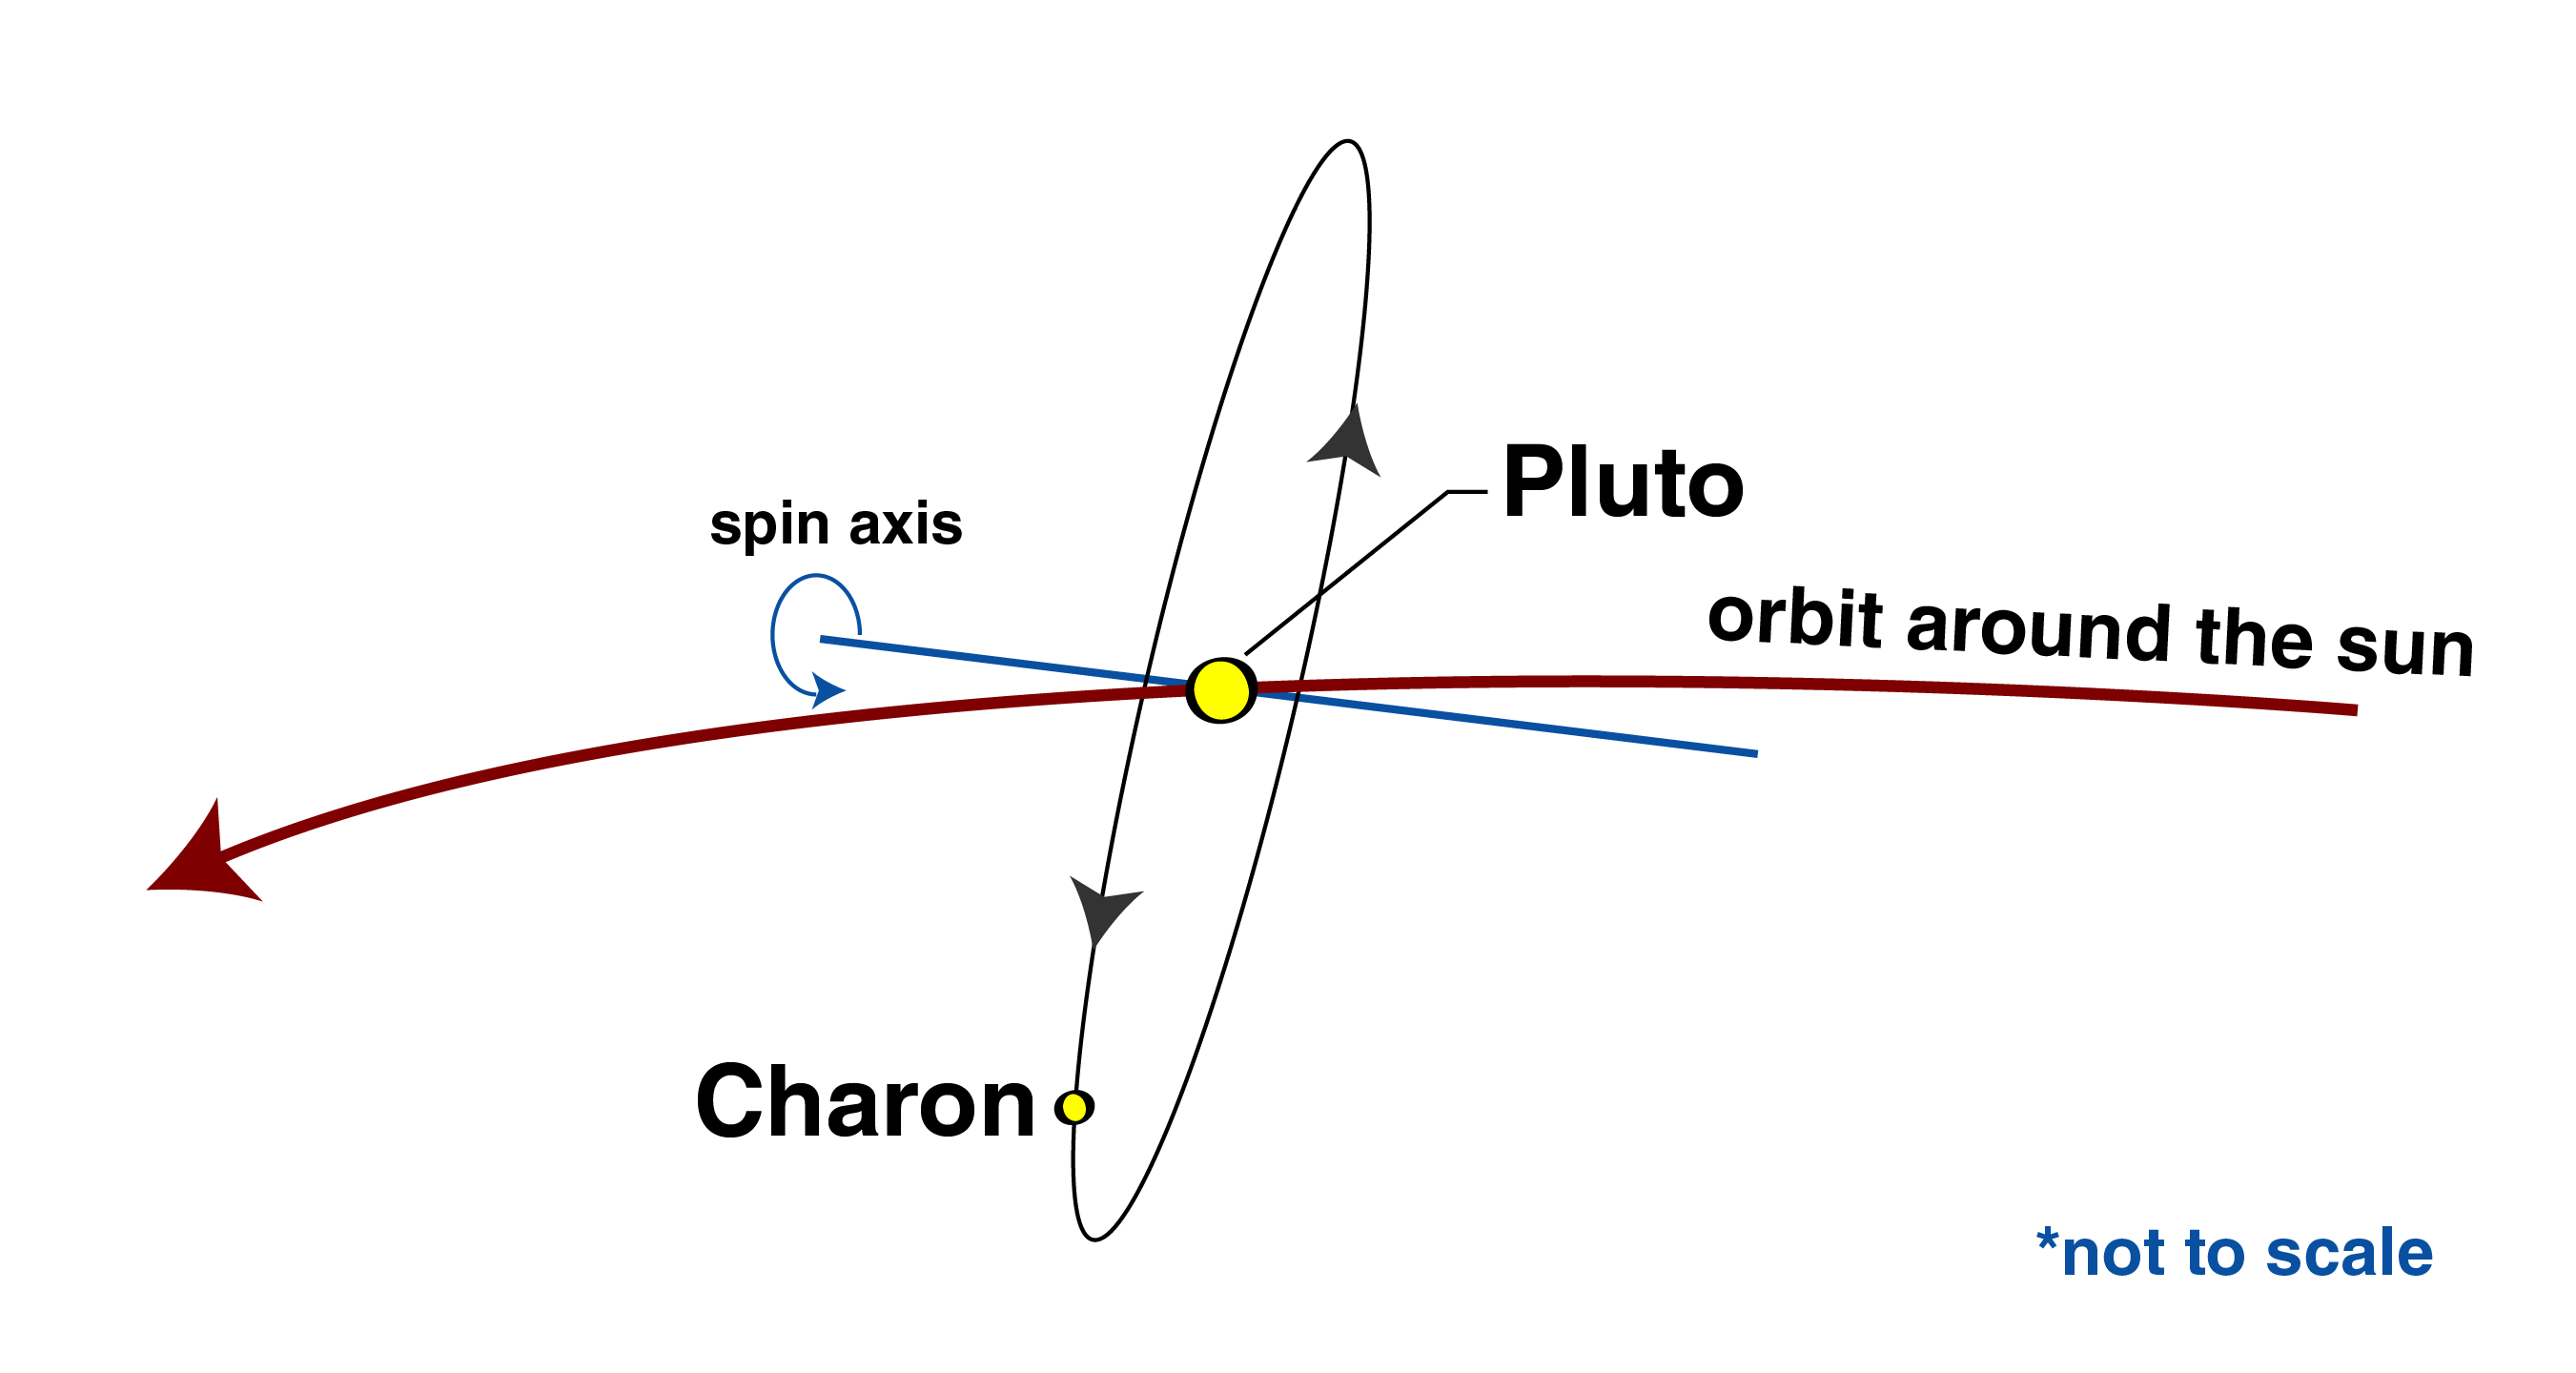 Orientation of Pluto-Charon orbits.